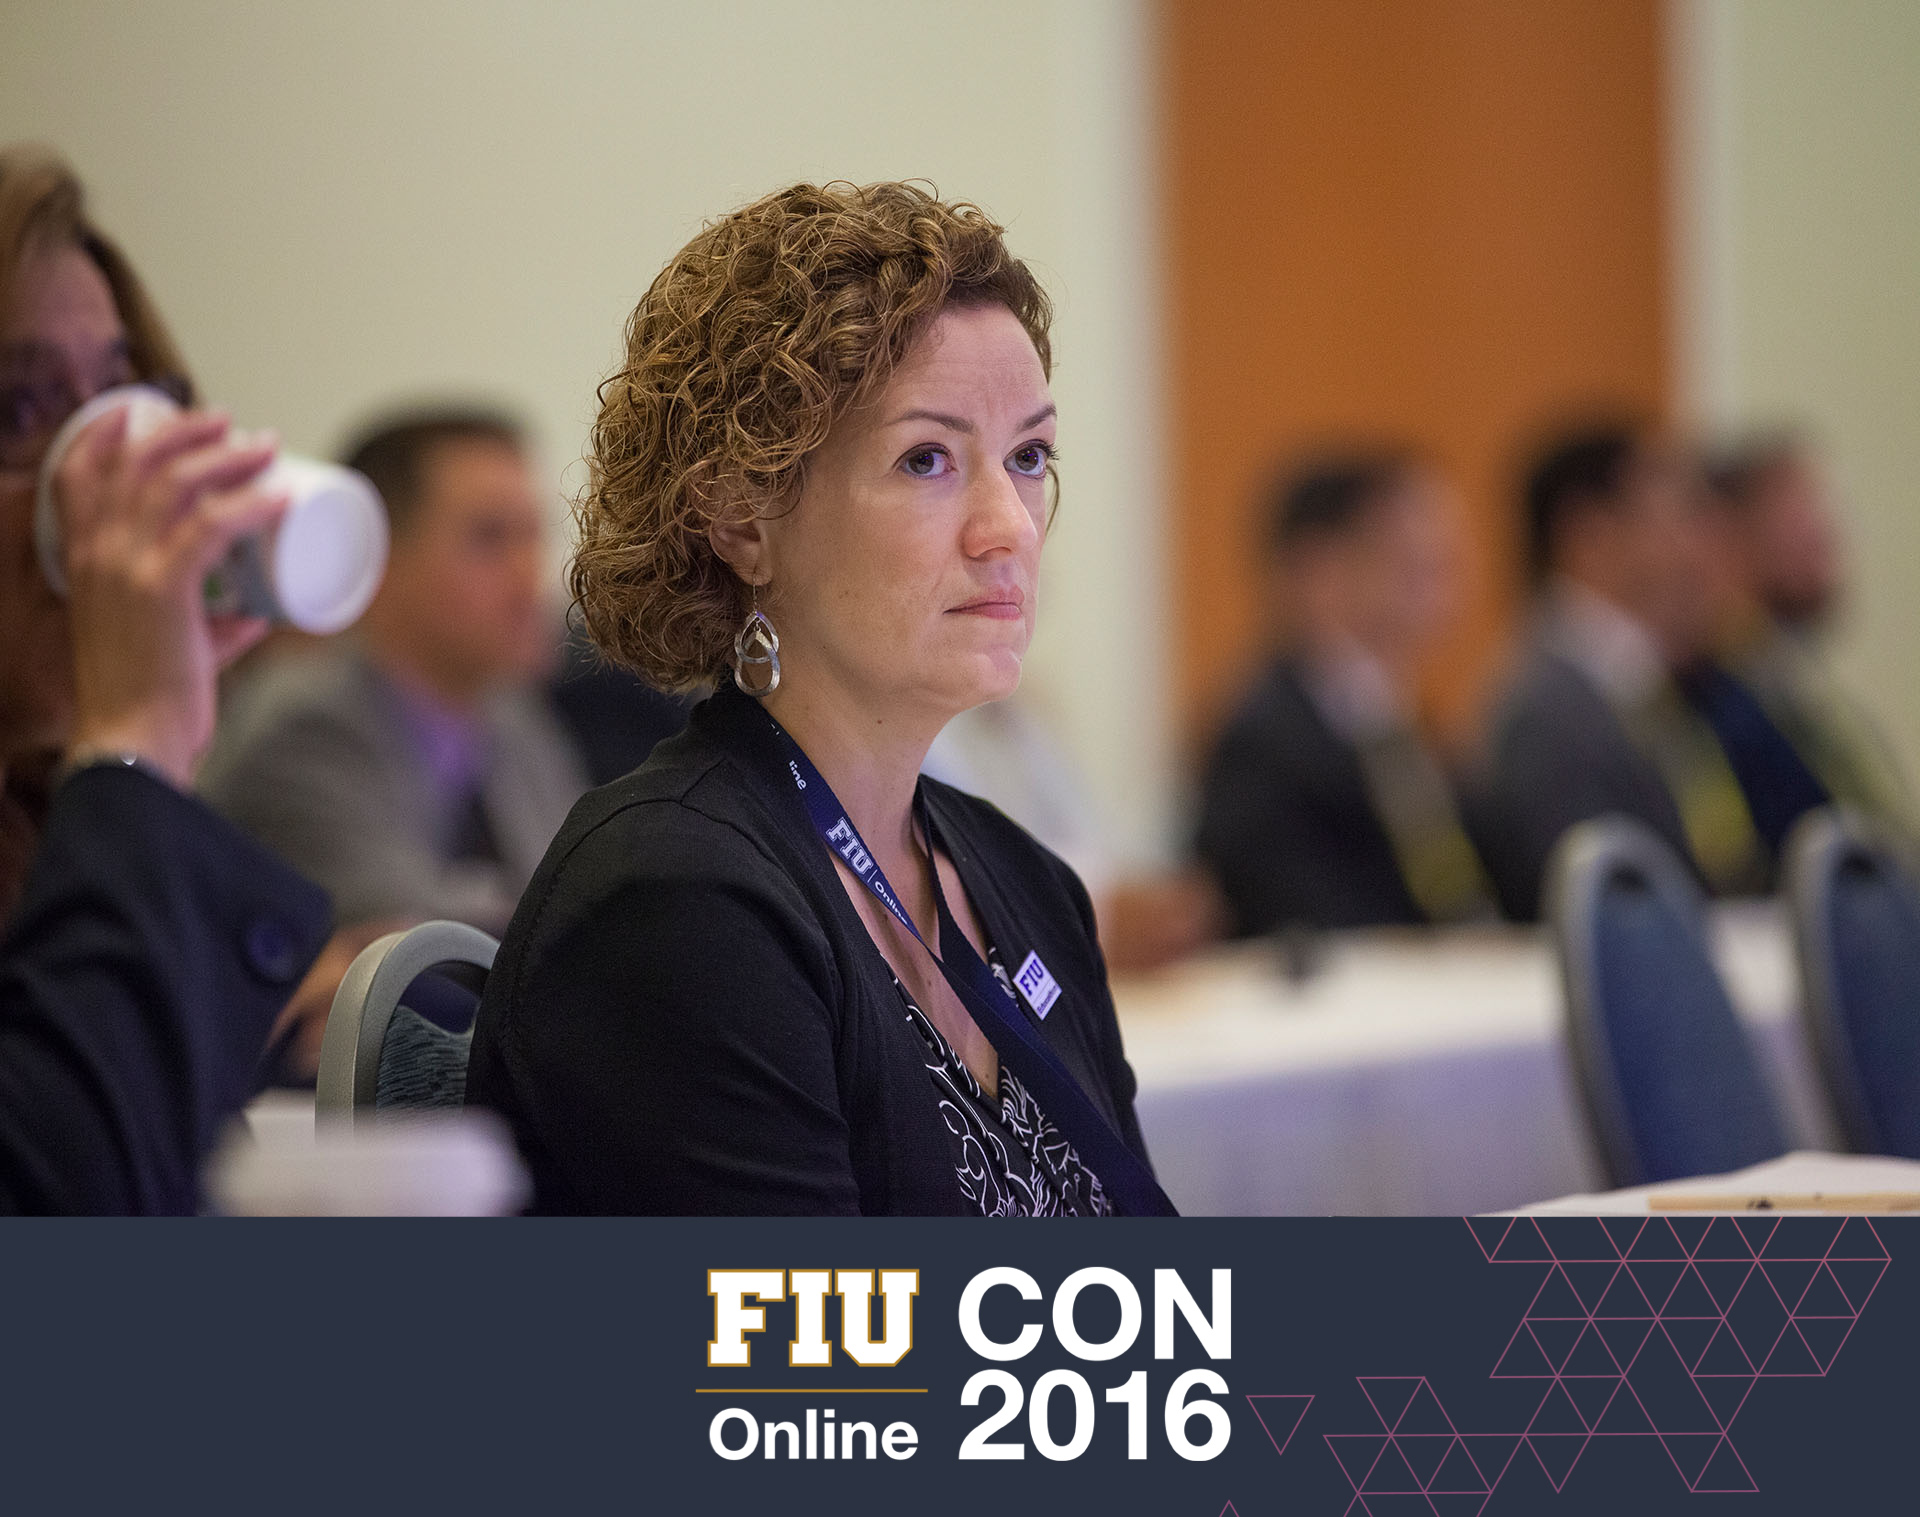 14.jpg FIU Online conference photos